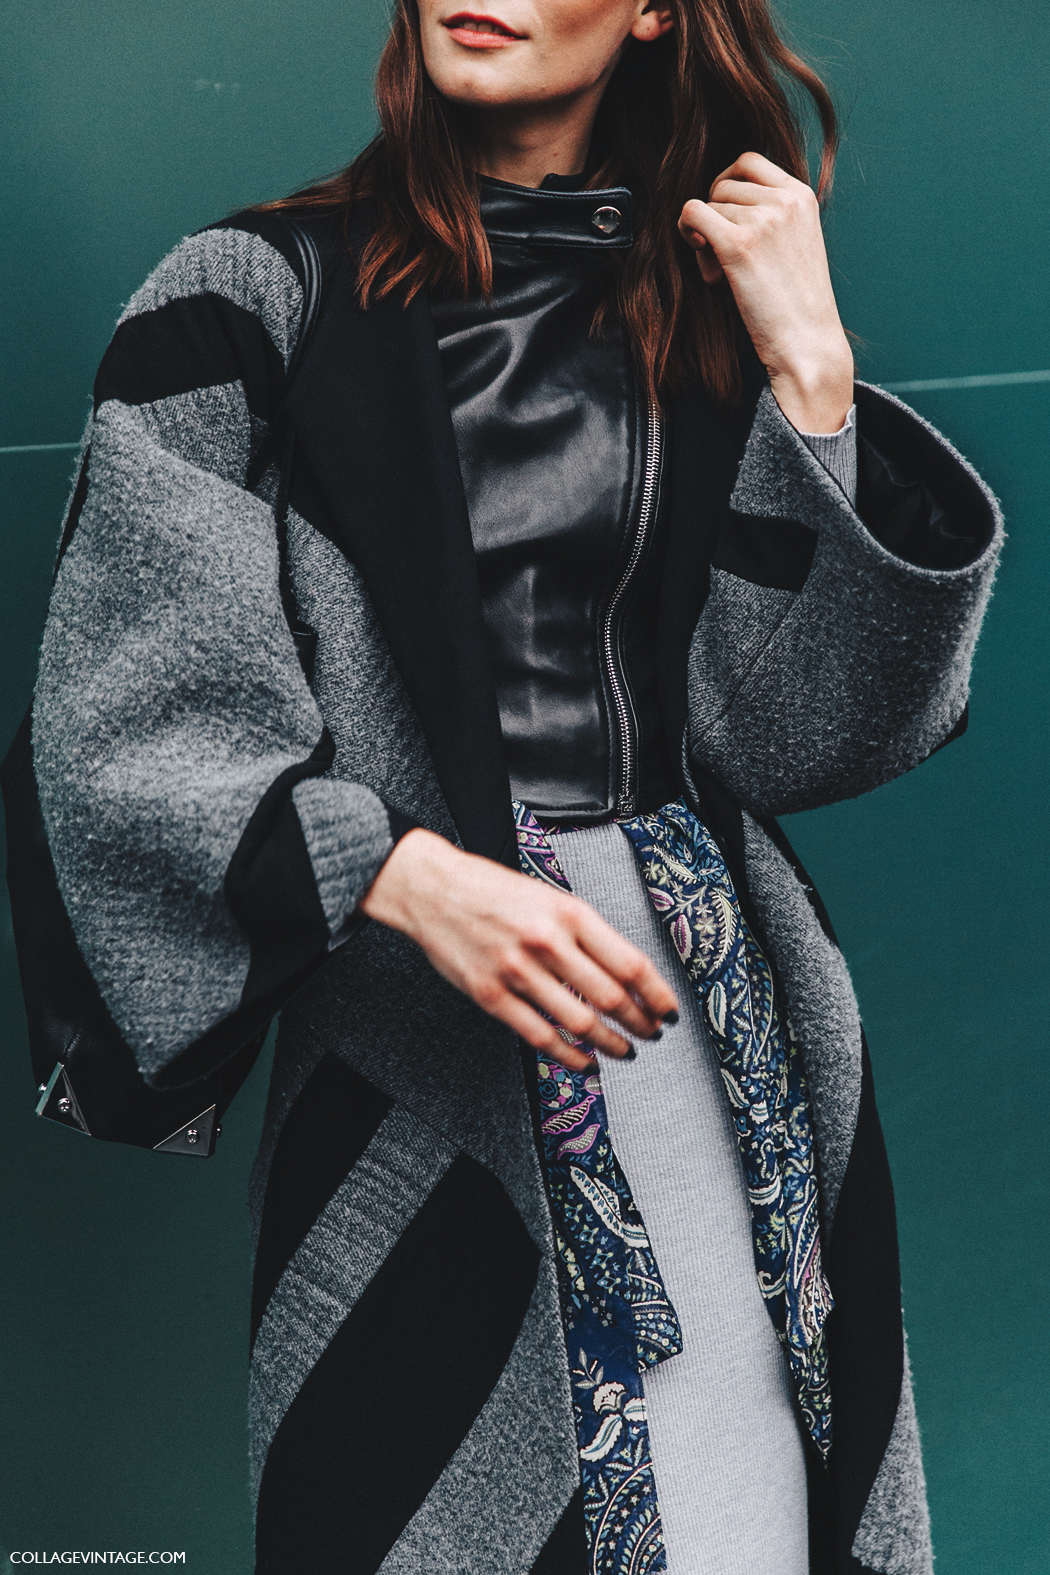 Milan_Fashion_Week_Fall_16-MFW-Street_Style-Collage_Vintage-Model-Midi_Skirt-Layers-Biker_Jacket-7